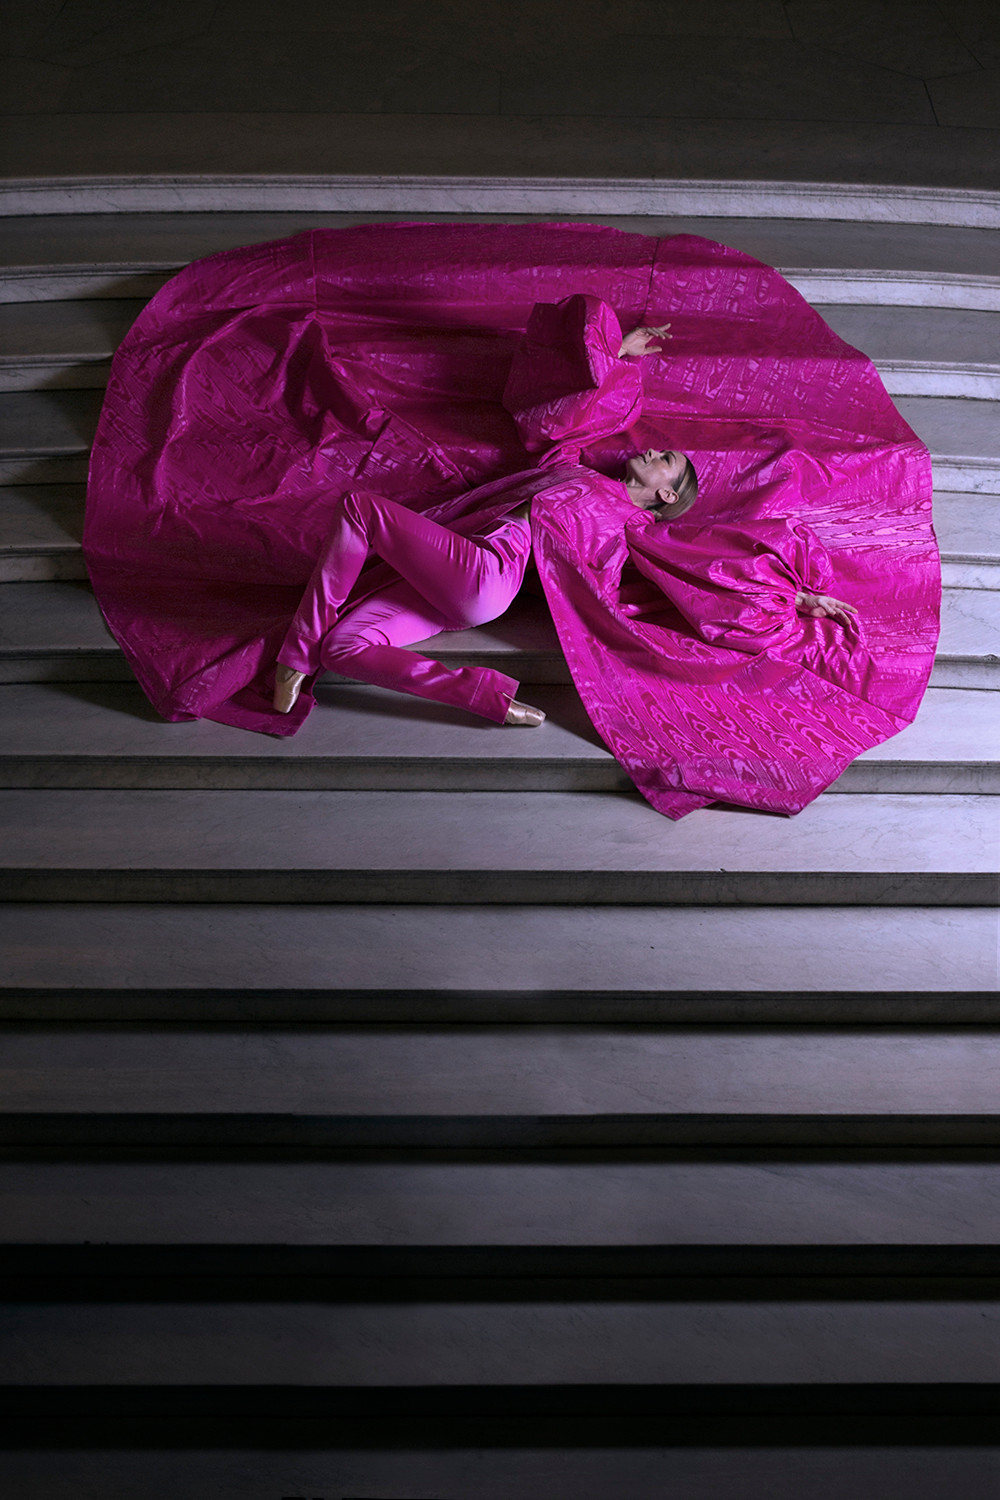 Eleonora Abbagnato in « SHOCKING » Coat in shocking pink silk moiré. Pants in shocking pink silk duchess satin. Schiaparelli July 2018 Haute Couture collection. Photographed at the Opera de Paris by French Cowboy.